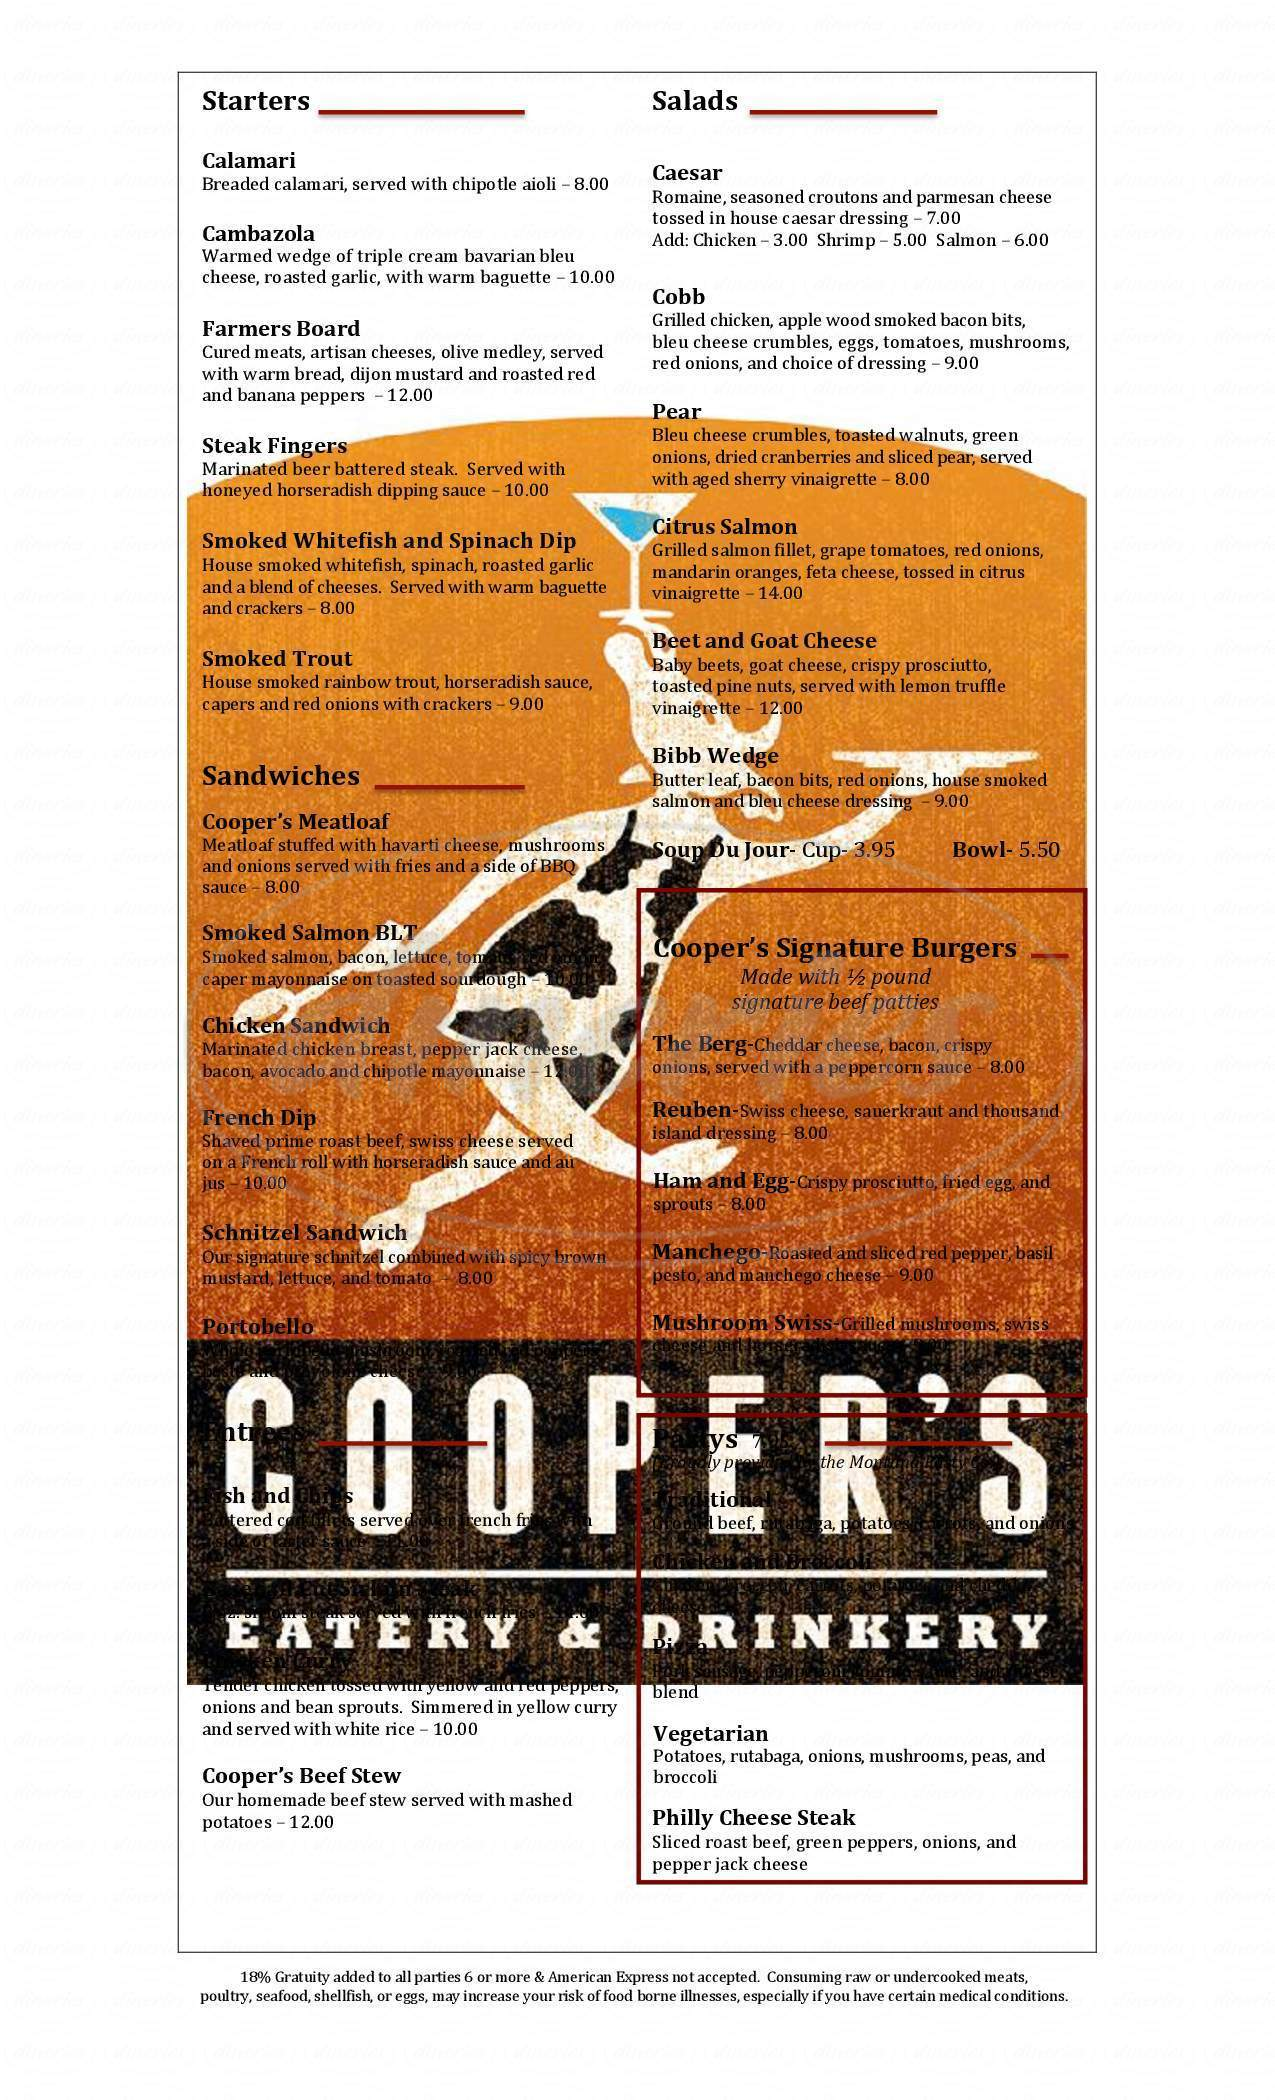 menu for Cooper's Eatery & Drinkery